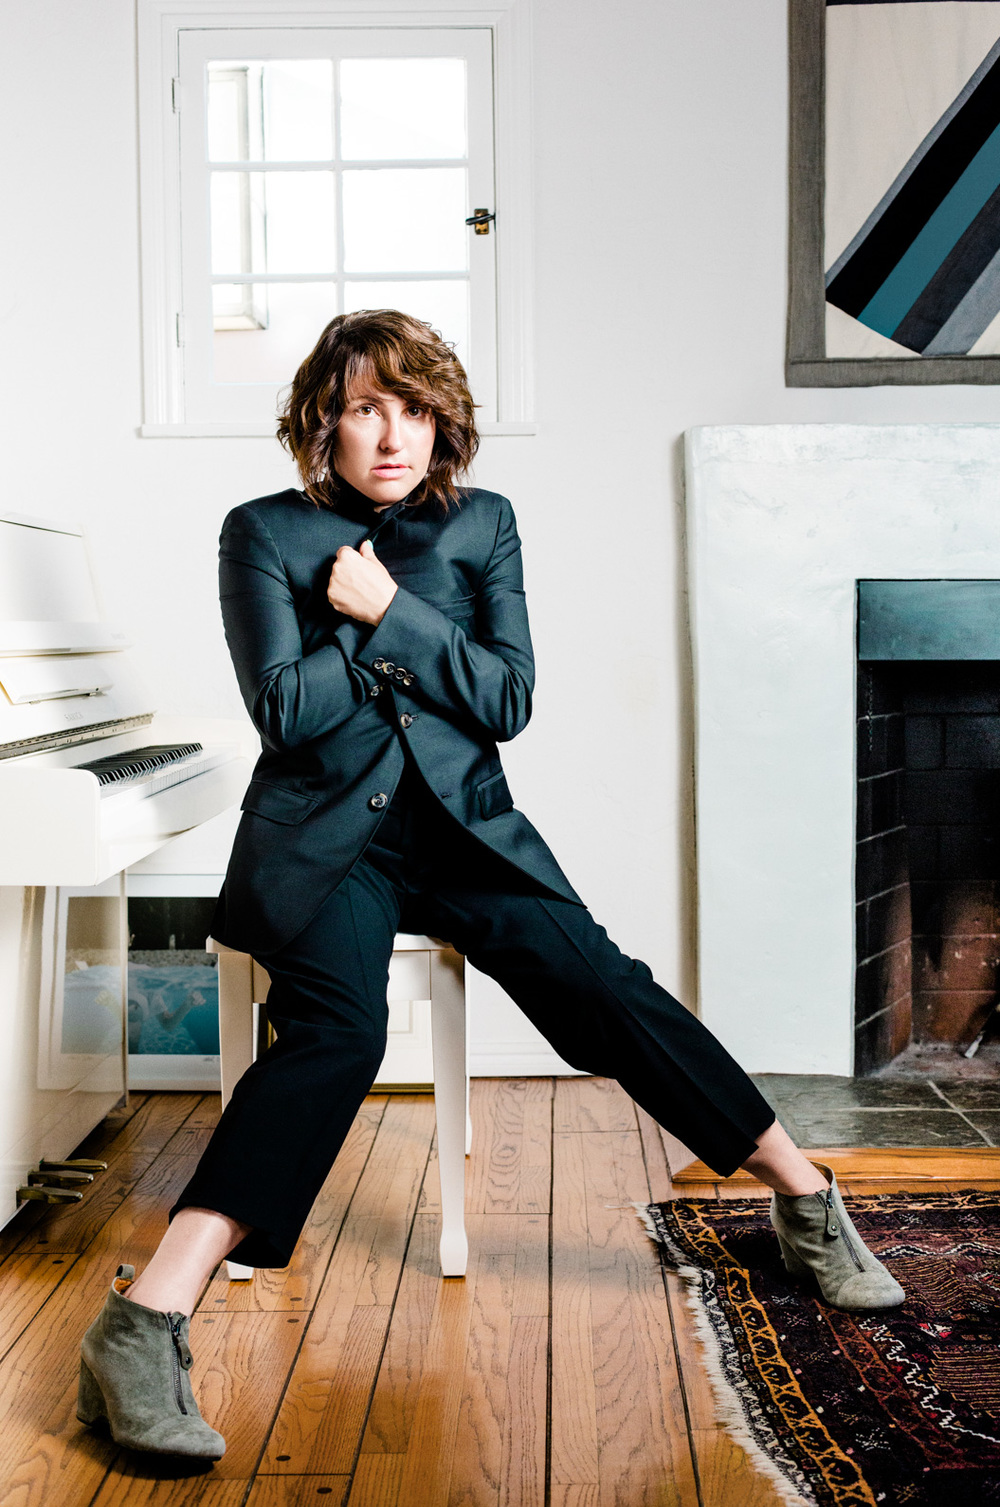 Jill Soloway: Director, Writer